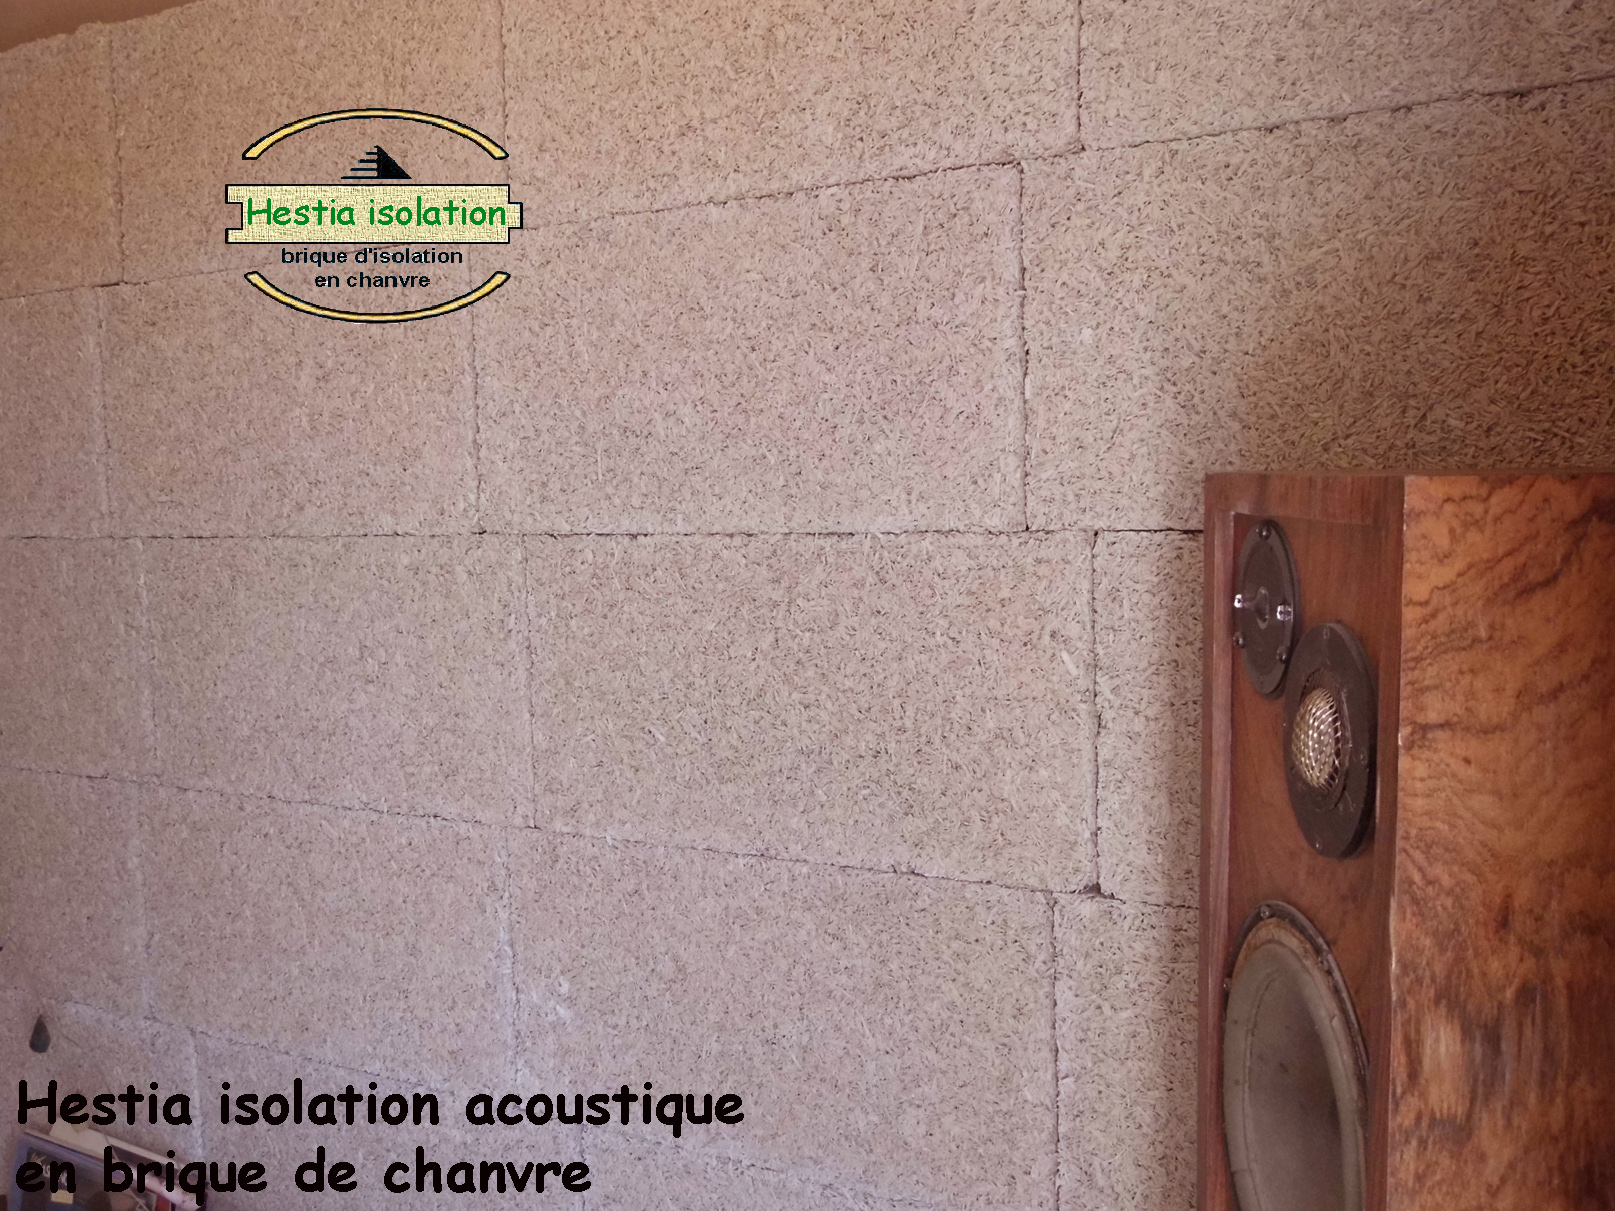 Hestia acoustique isolant absorbeur en chanvre